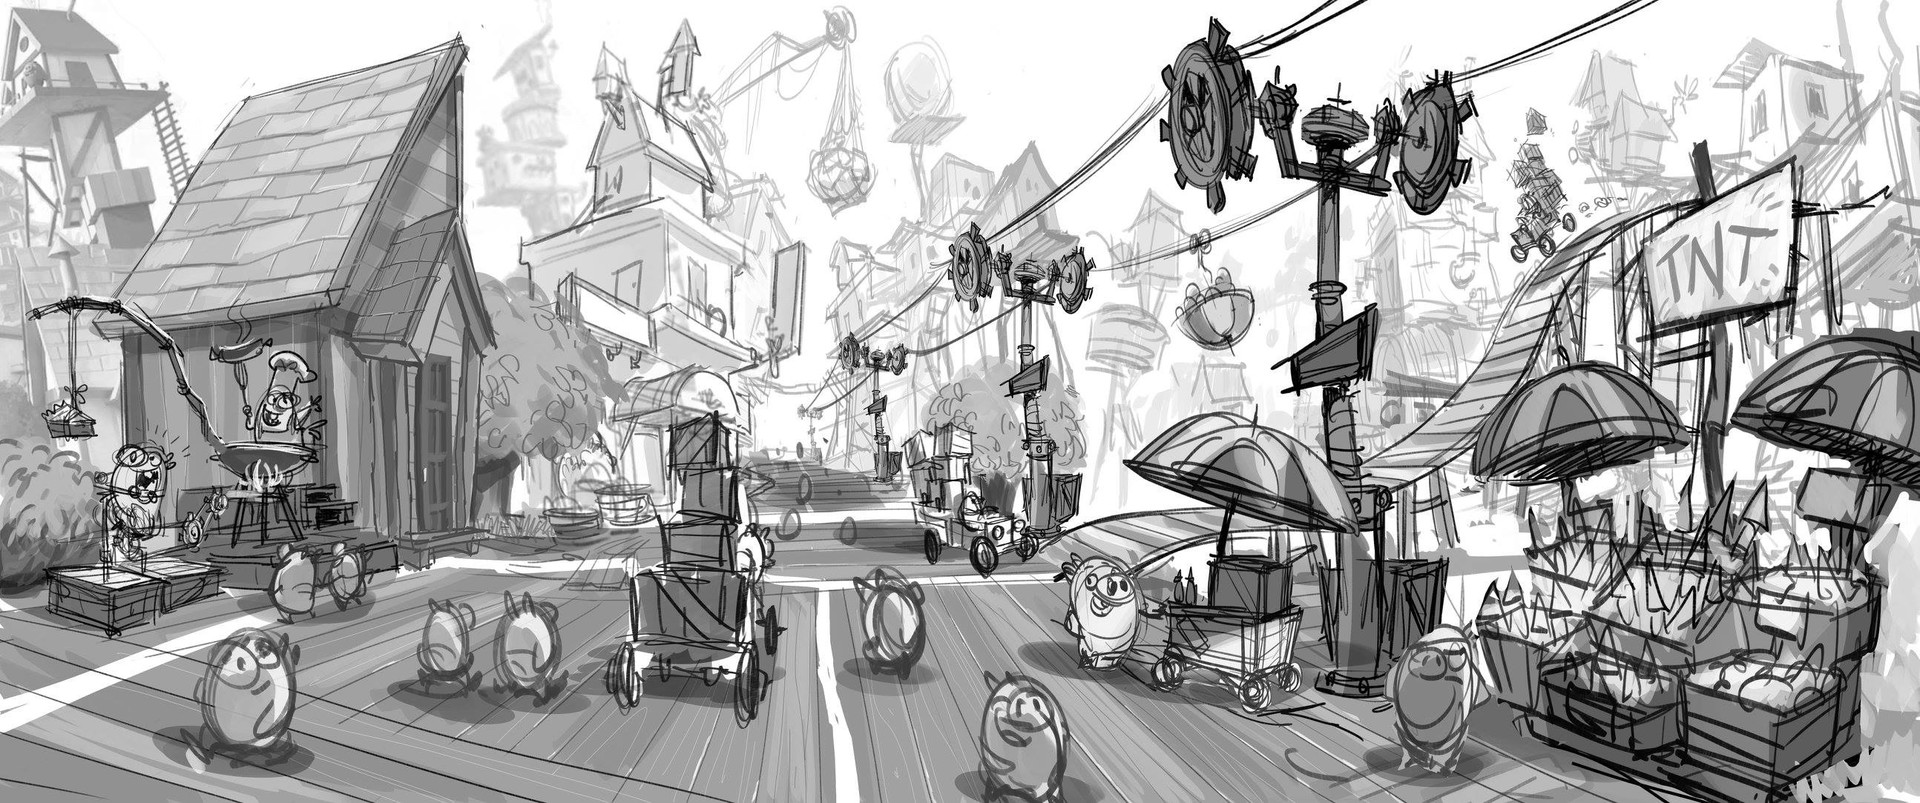 ArtStation Exploratory Study On Pig Island For The Angry